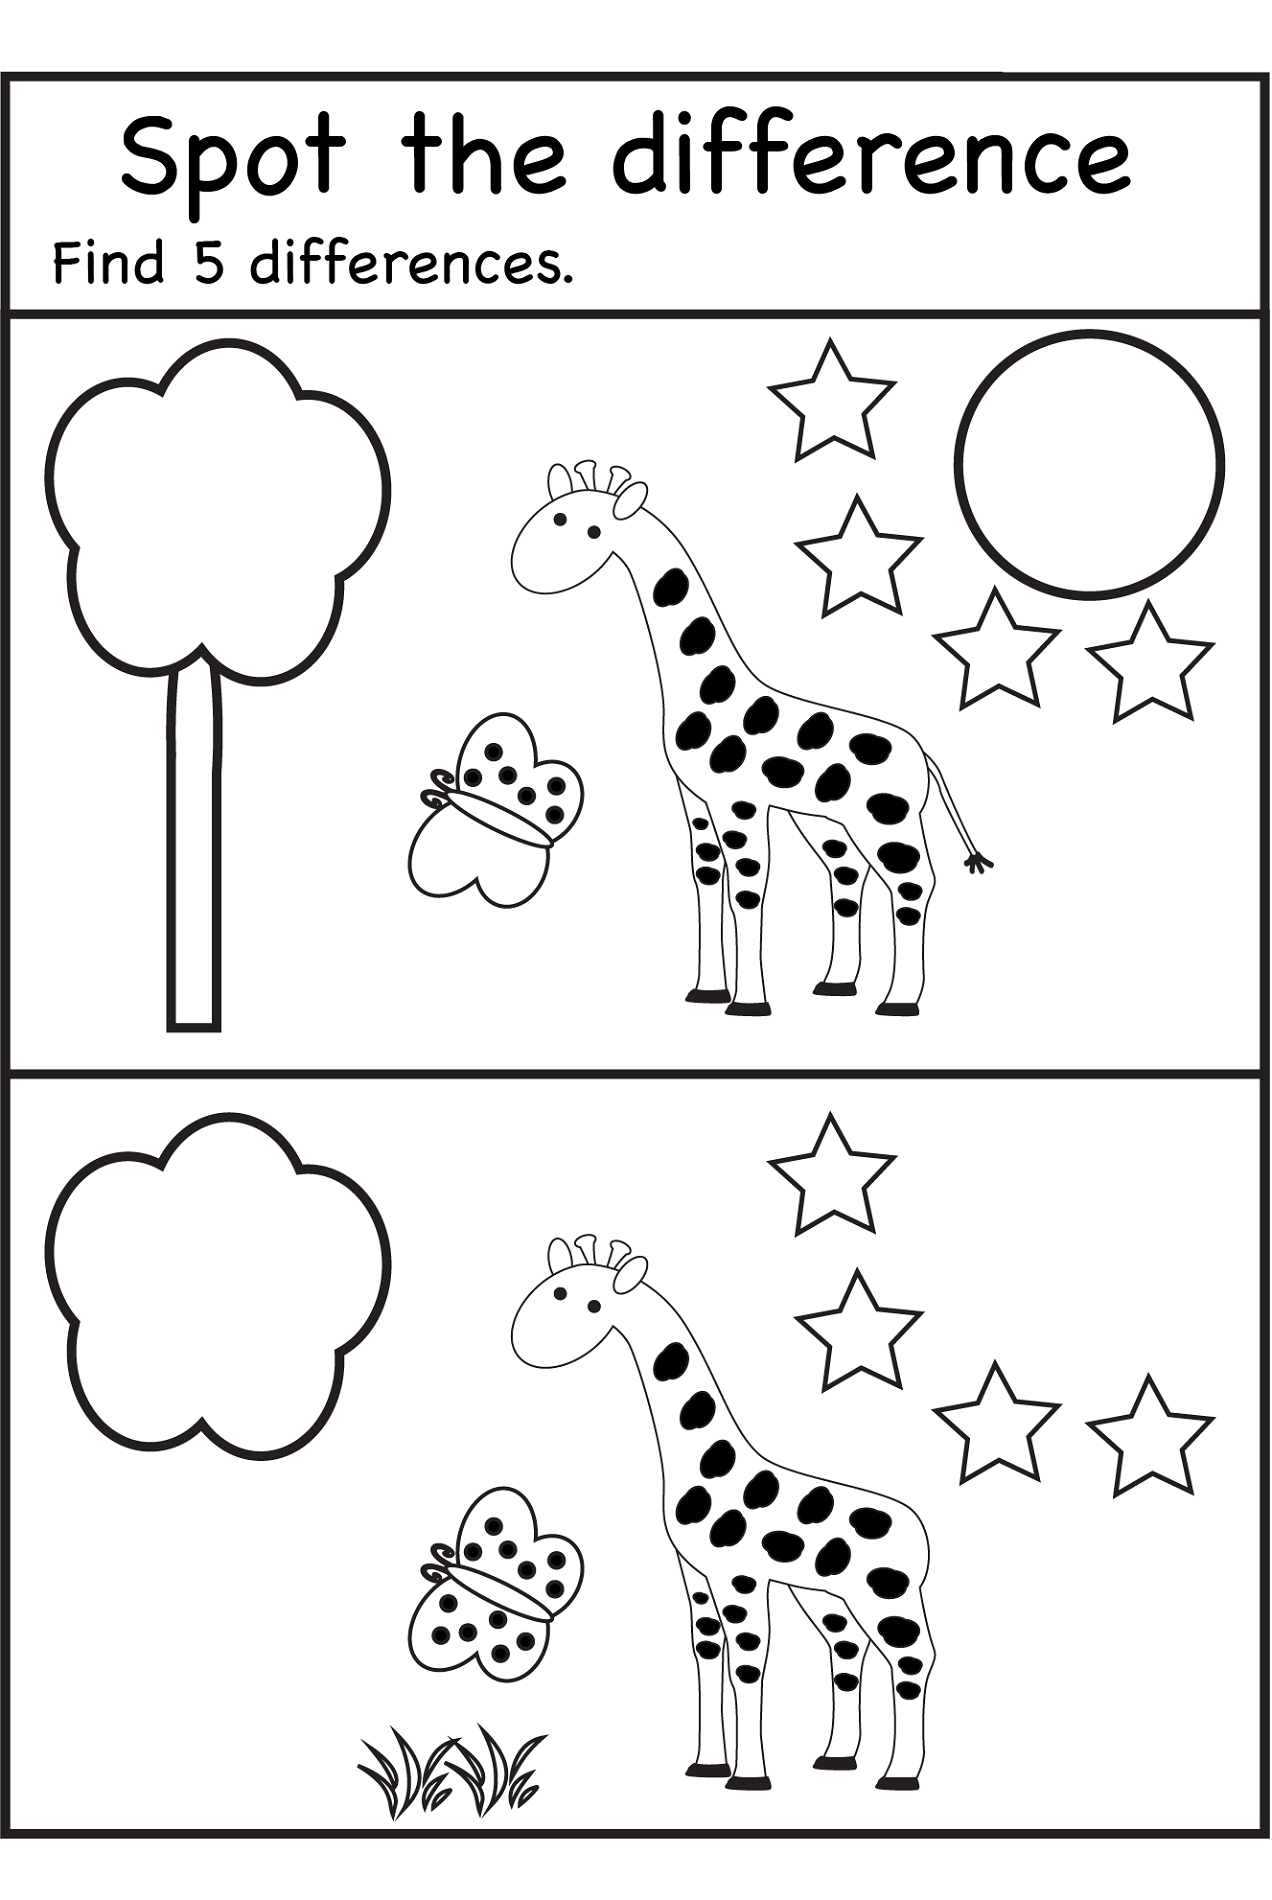 Spot The Difference Worksheets | Spot The Difference Printable - Free Printable Spot The Difference Worksheets